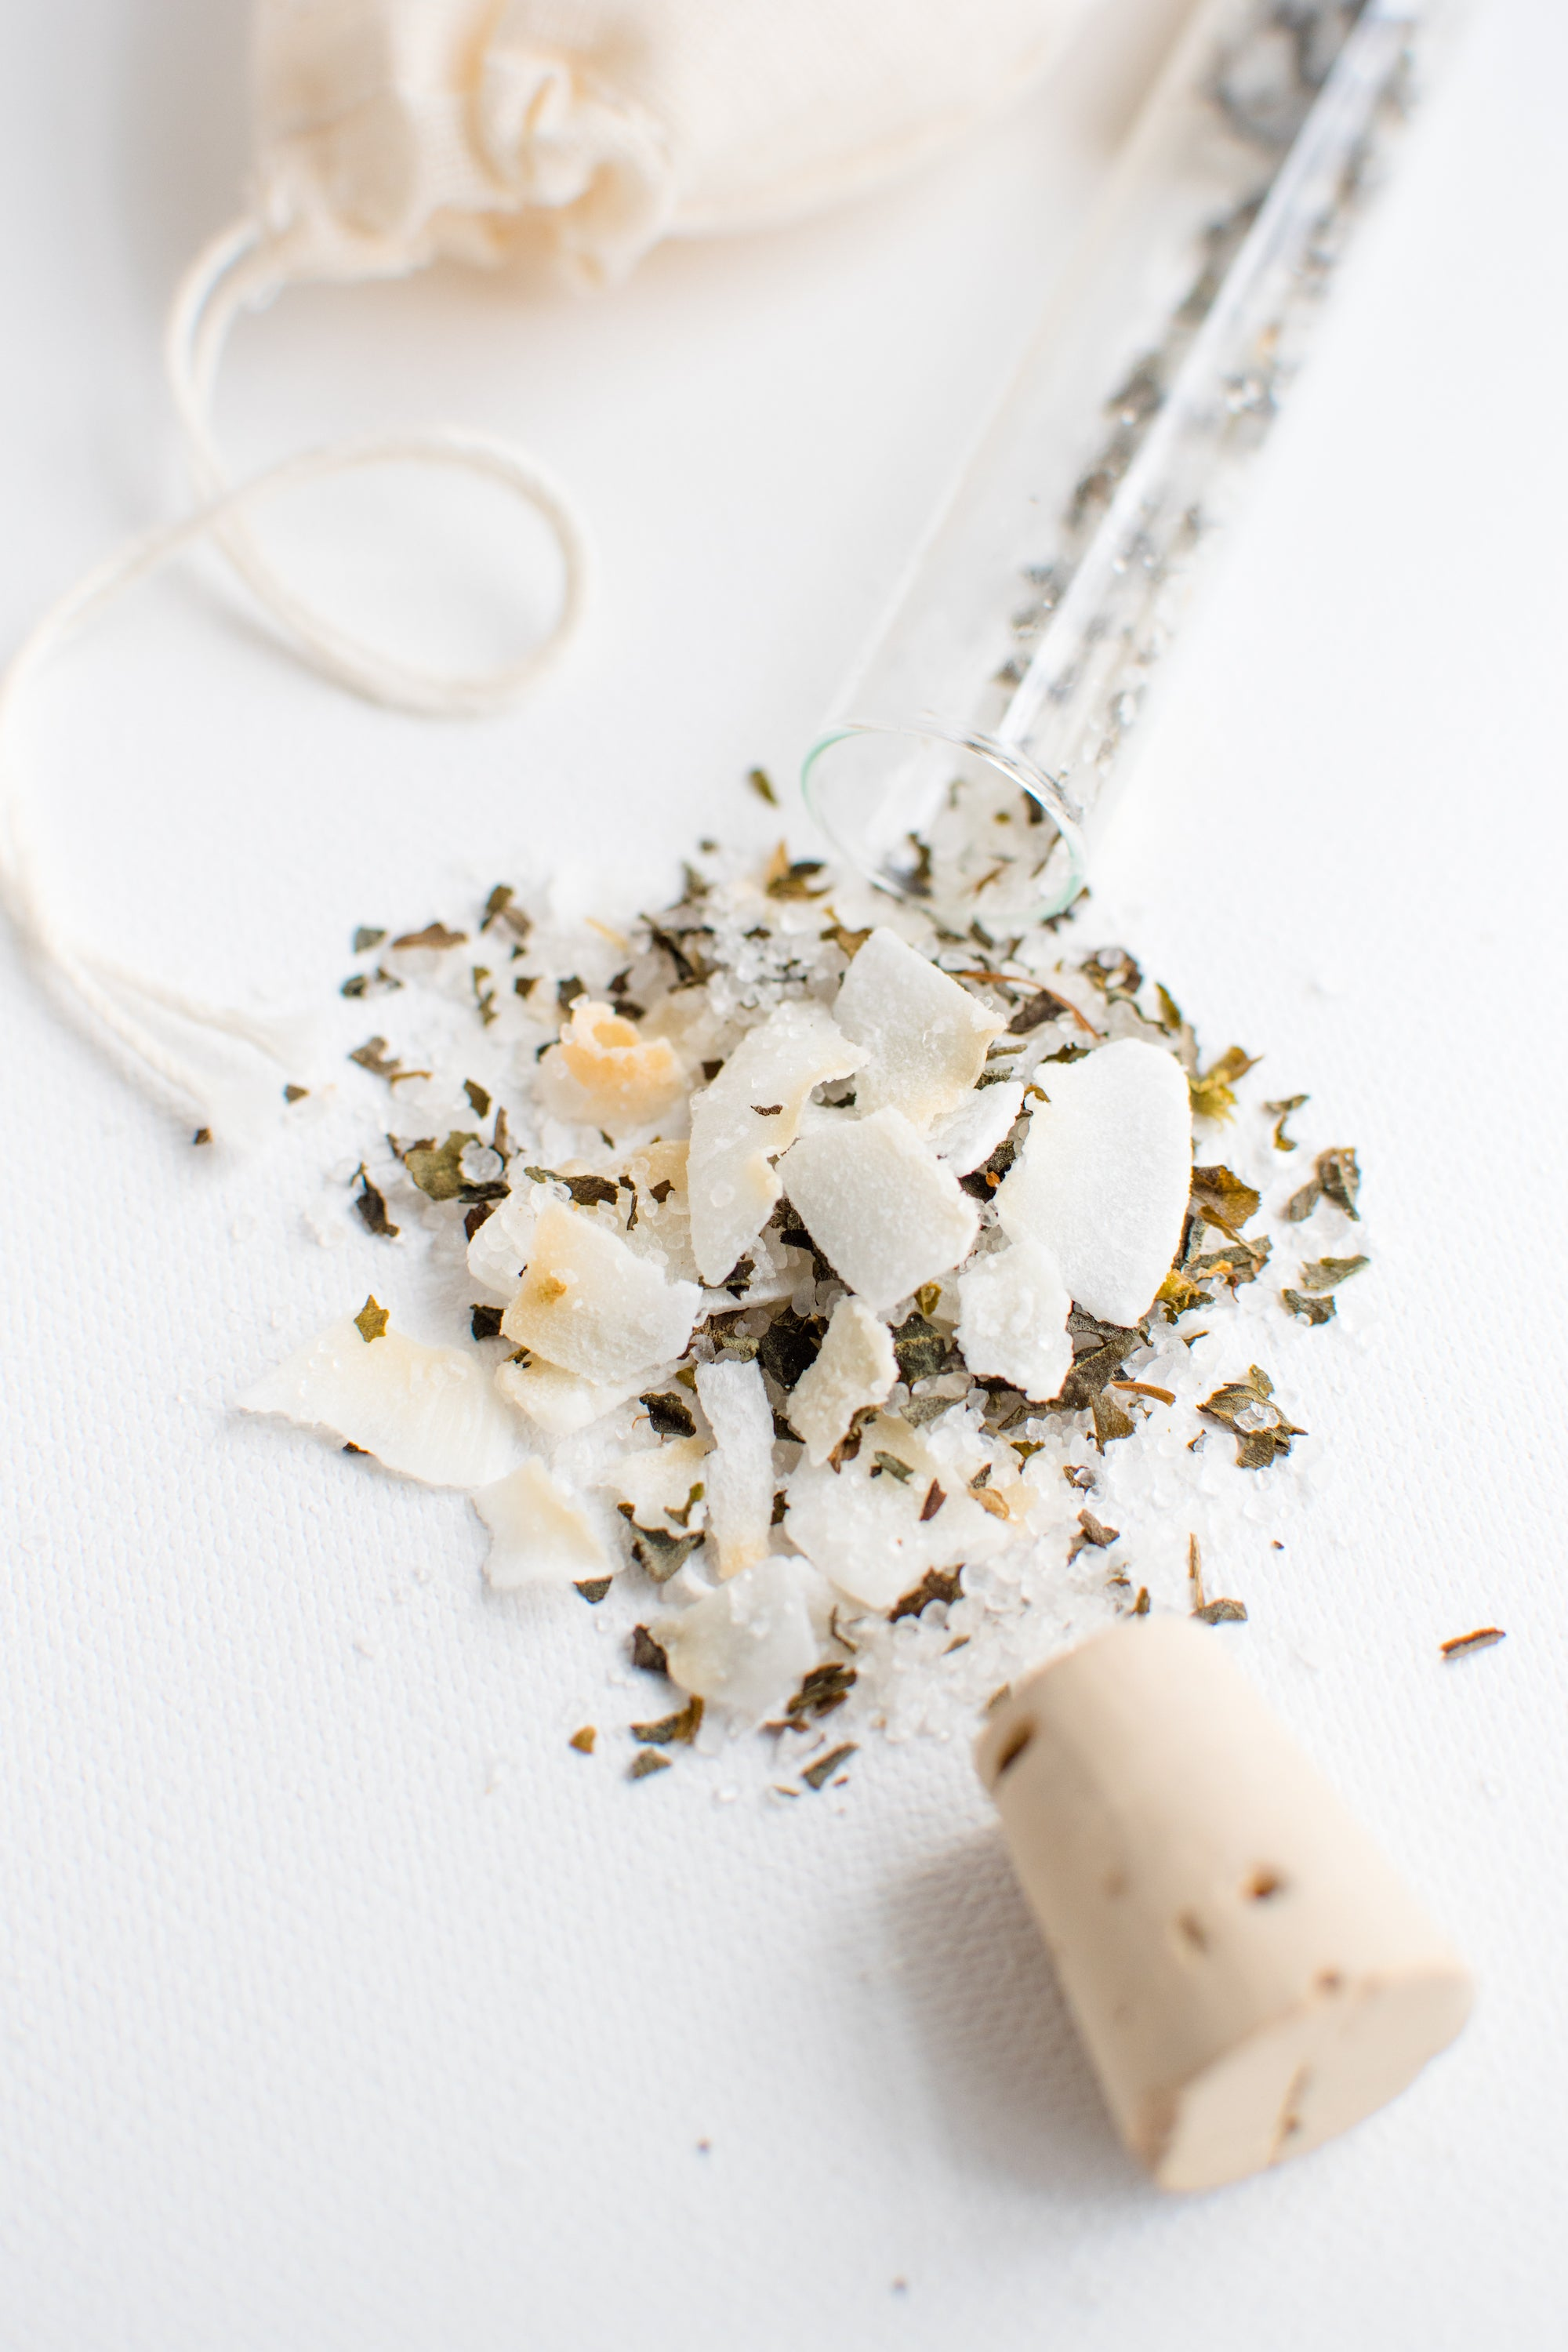 Truly Aesthetic Enliven Coconut Basil Bath Affirmations Bath Salts Ingredients Close Up